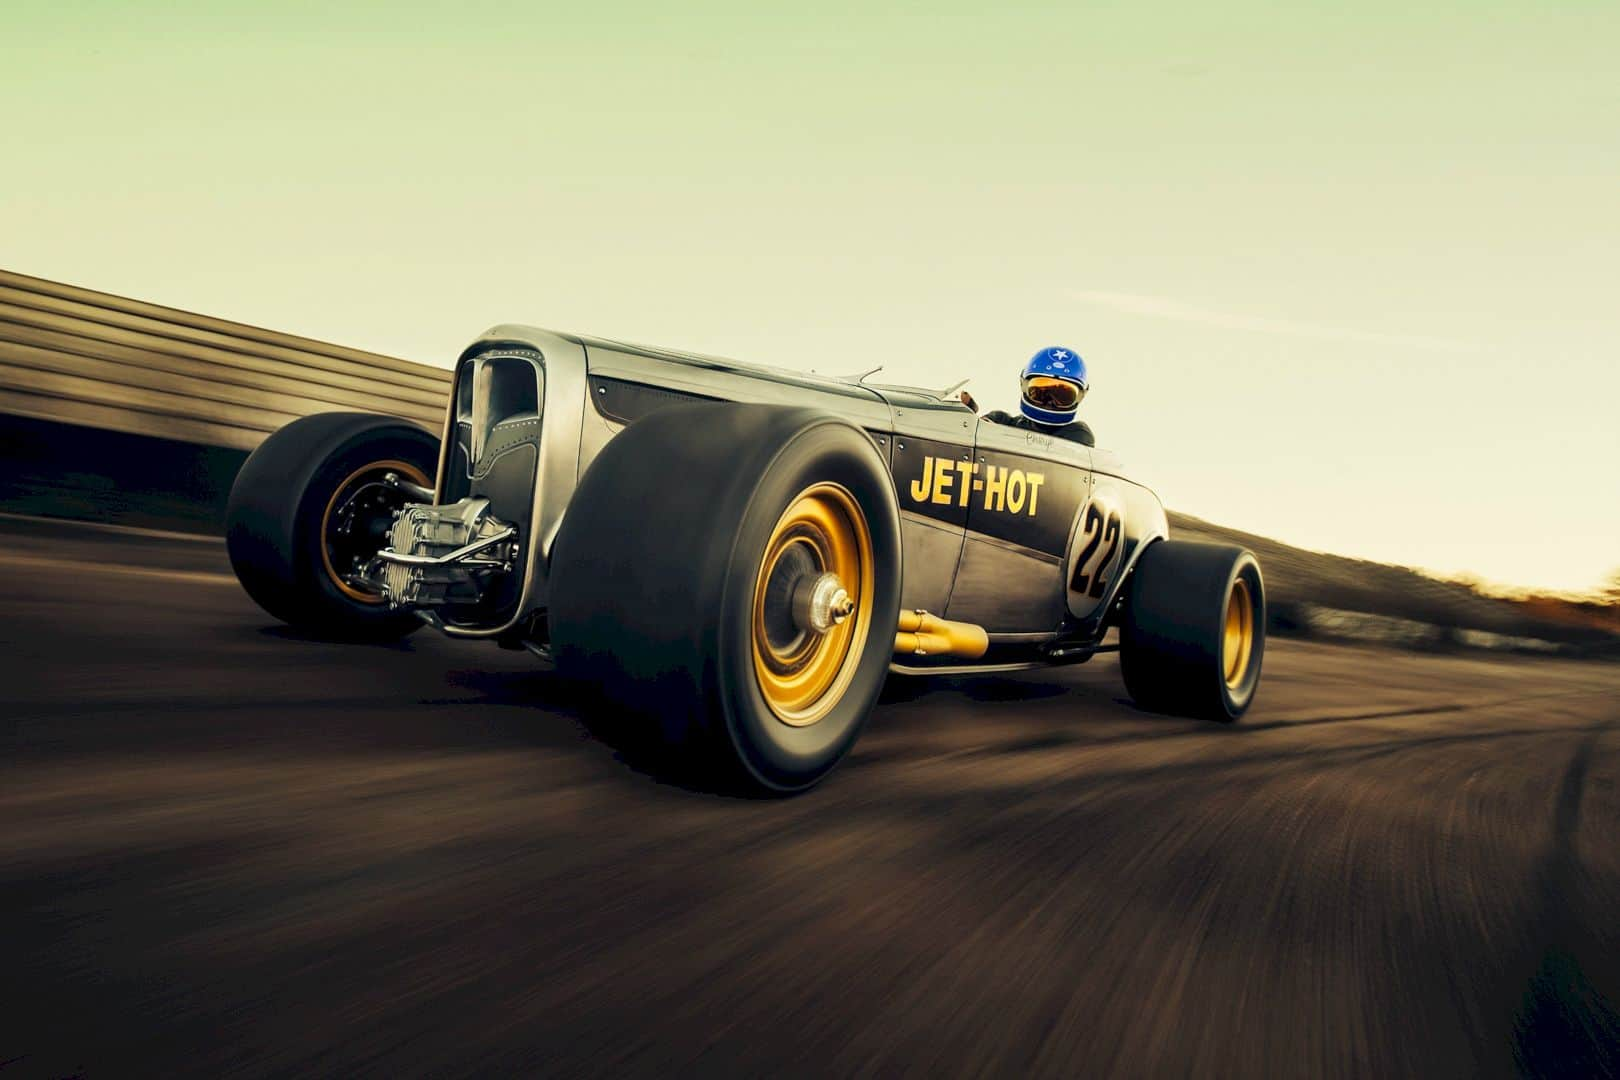 Jet-Hot Double Down: The Most Incredible Hotrod